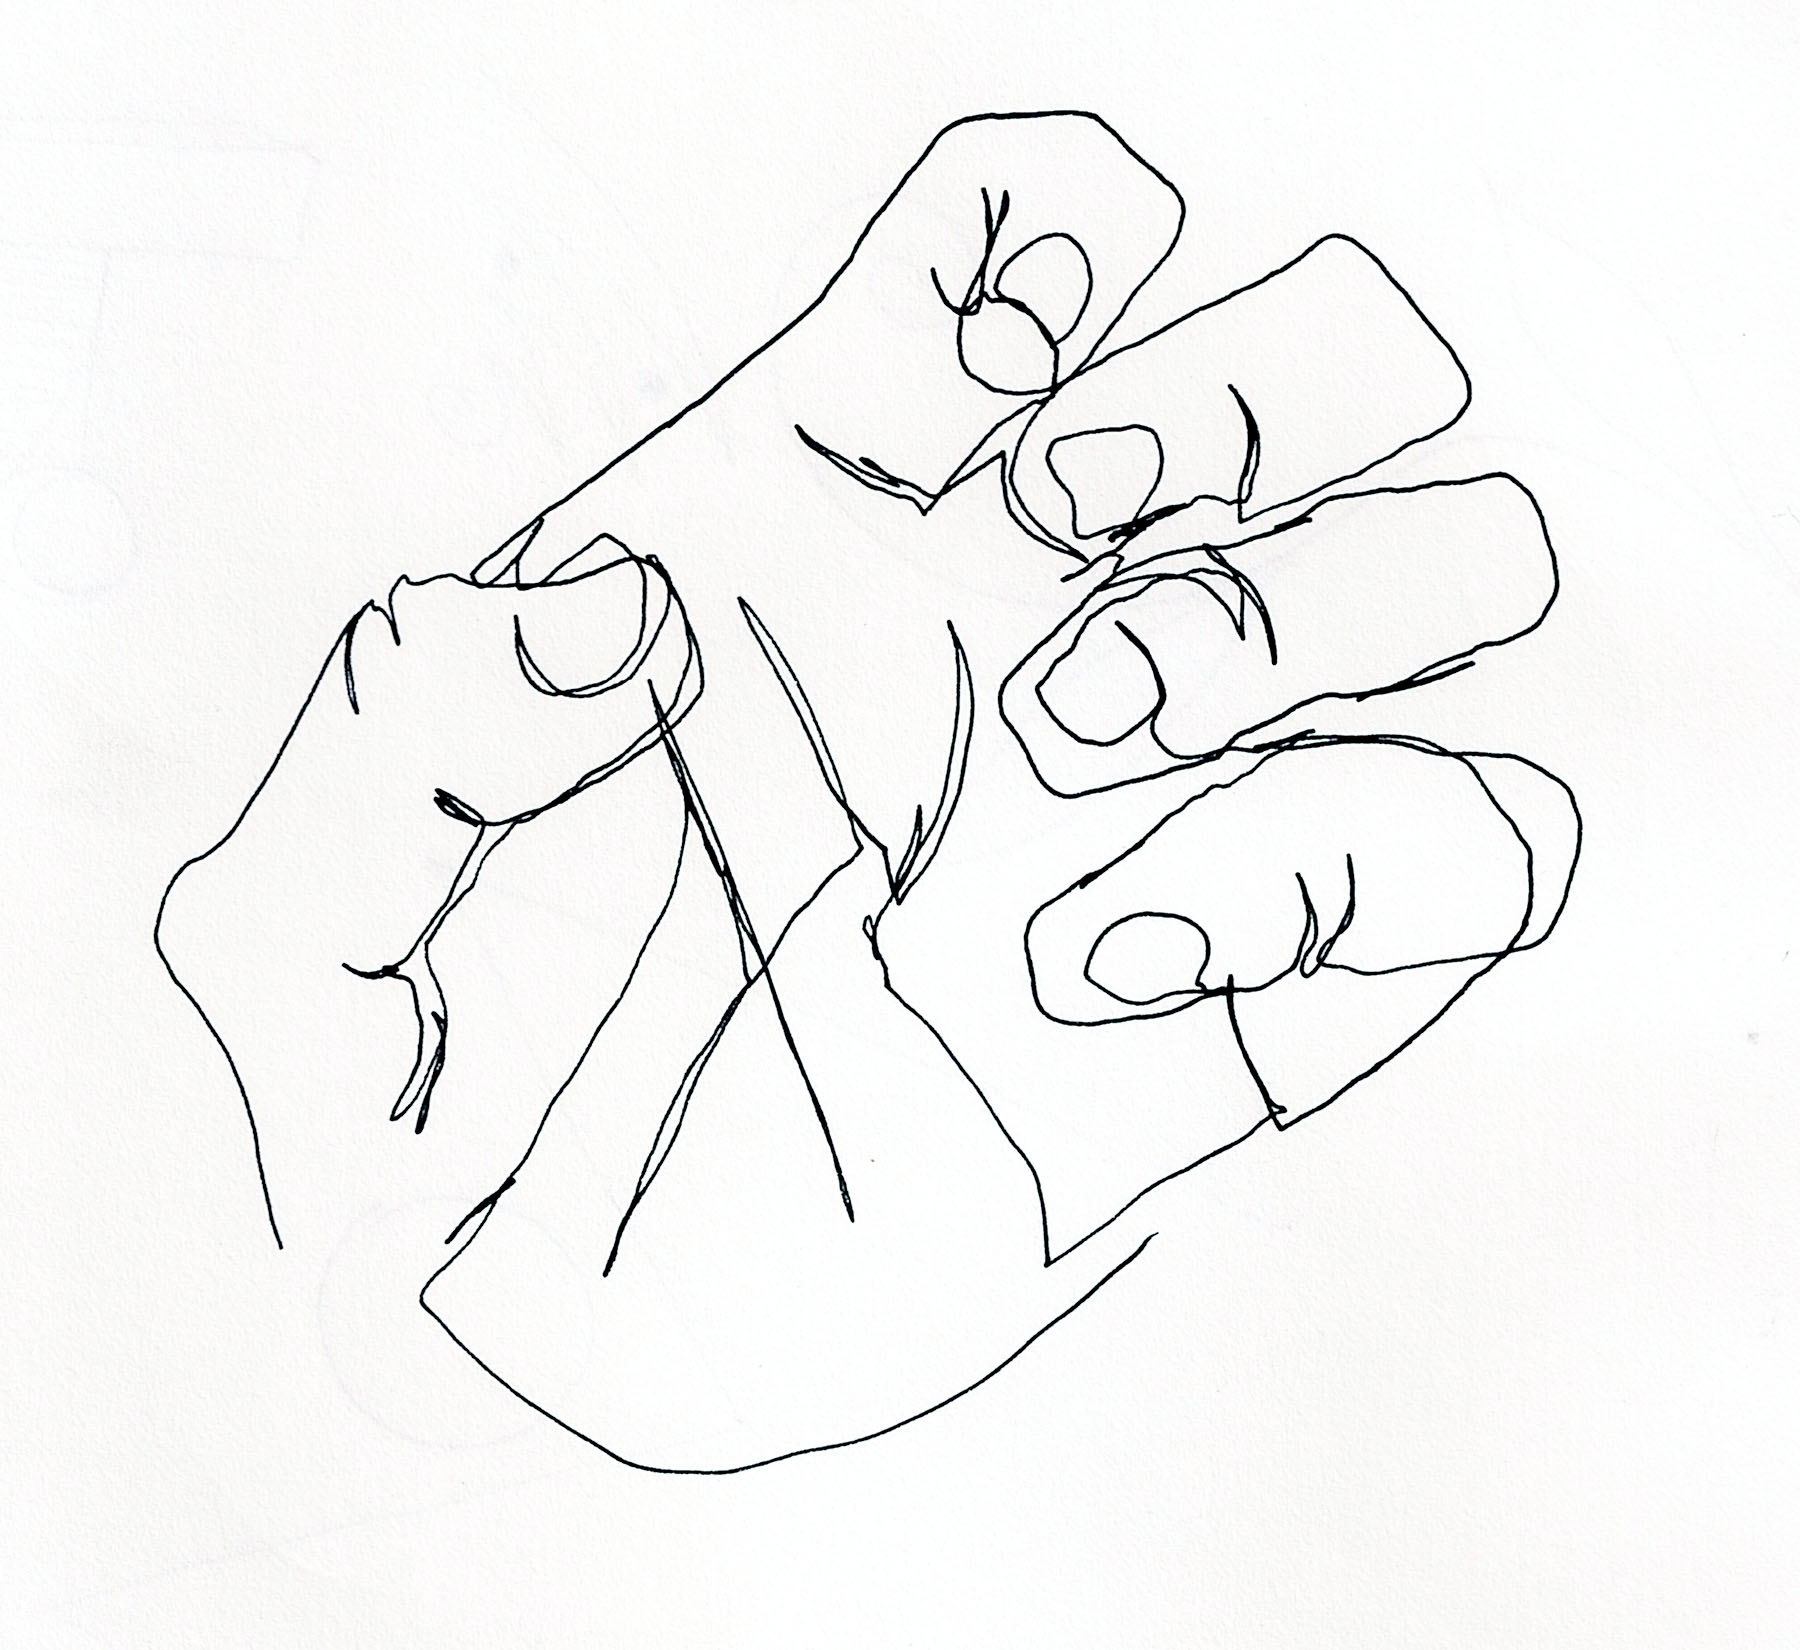 Line Art Hands : Drawing exercises kristopher may